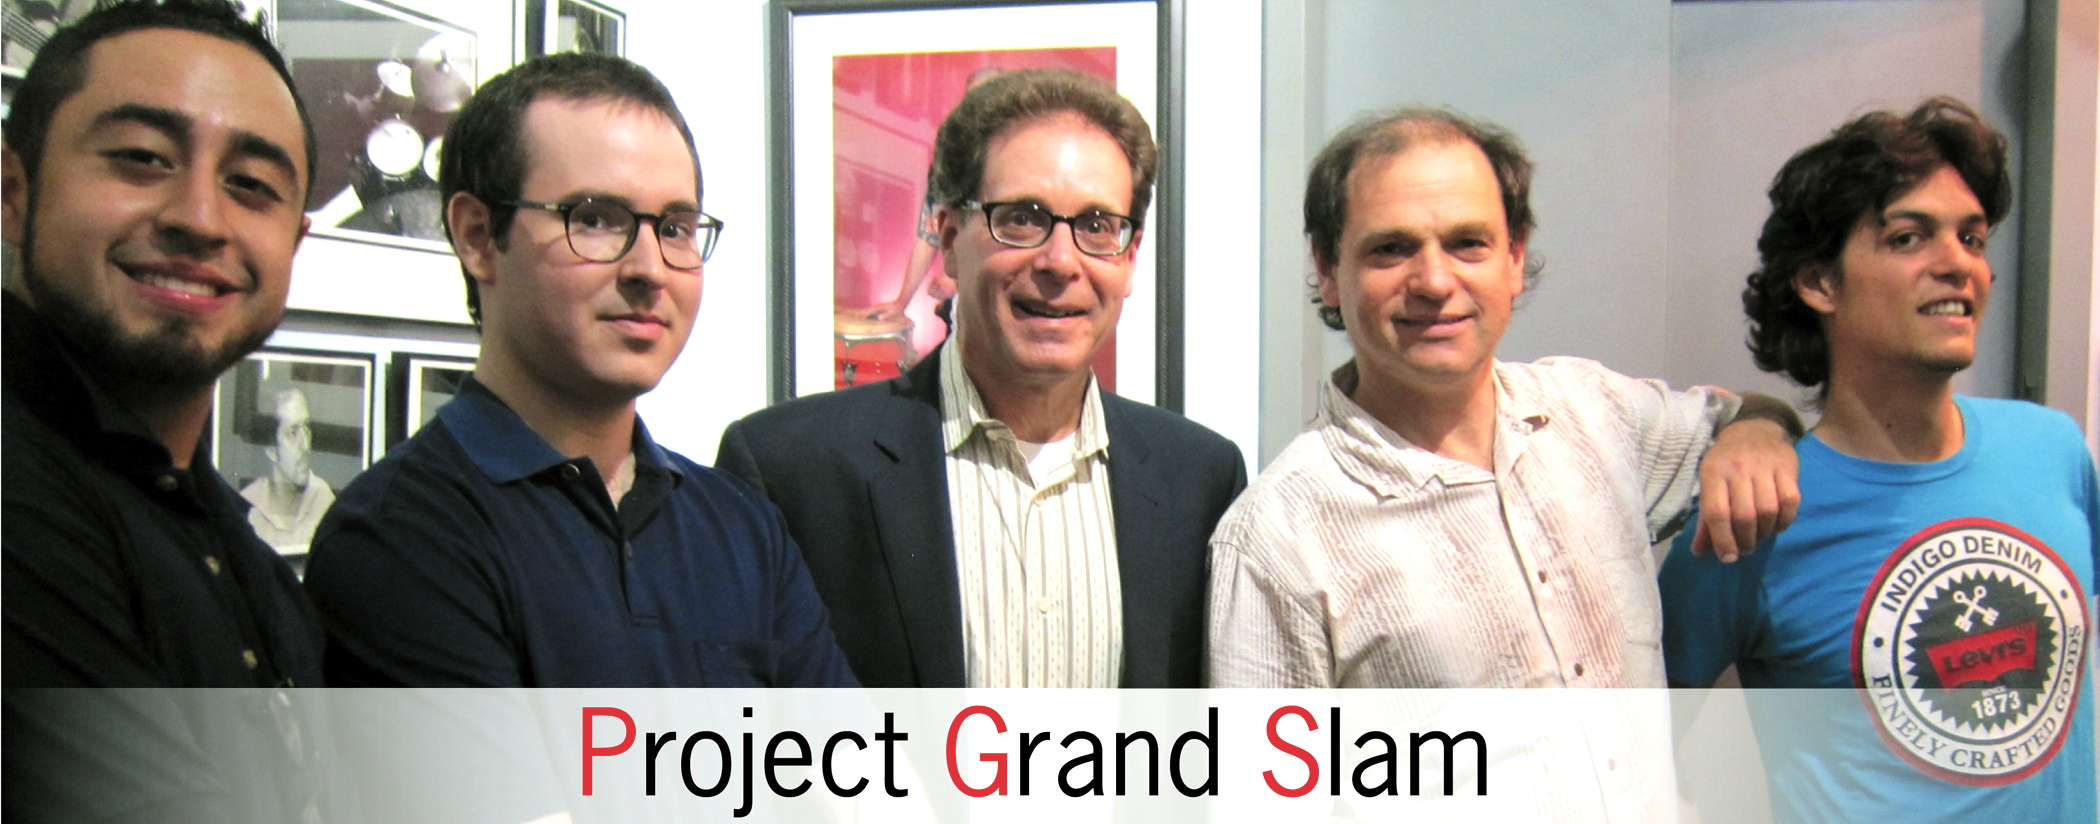 Robert Miller and Project Grand Slam